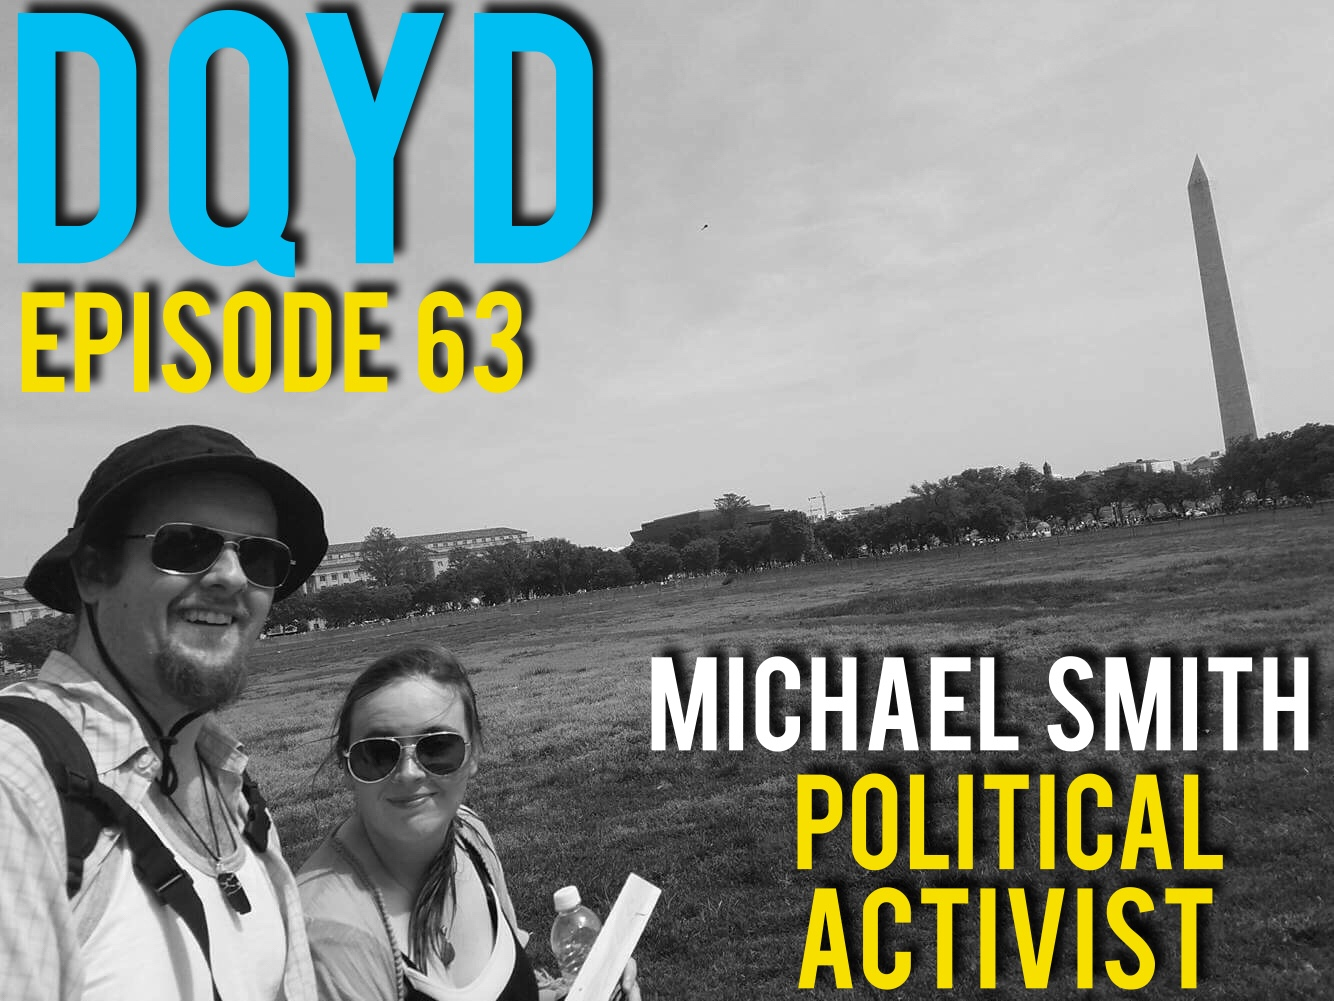 Episode 63 of Don't Quit your Daydream is with Political Activist: Michael Smith! Being an optimist when discussing politics can be difficult however Michael is doing everything he can to make a positive impact. From the local community to the national scale he has both started and joined organizations with the goal of protecting the environment.